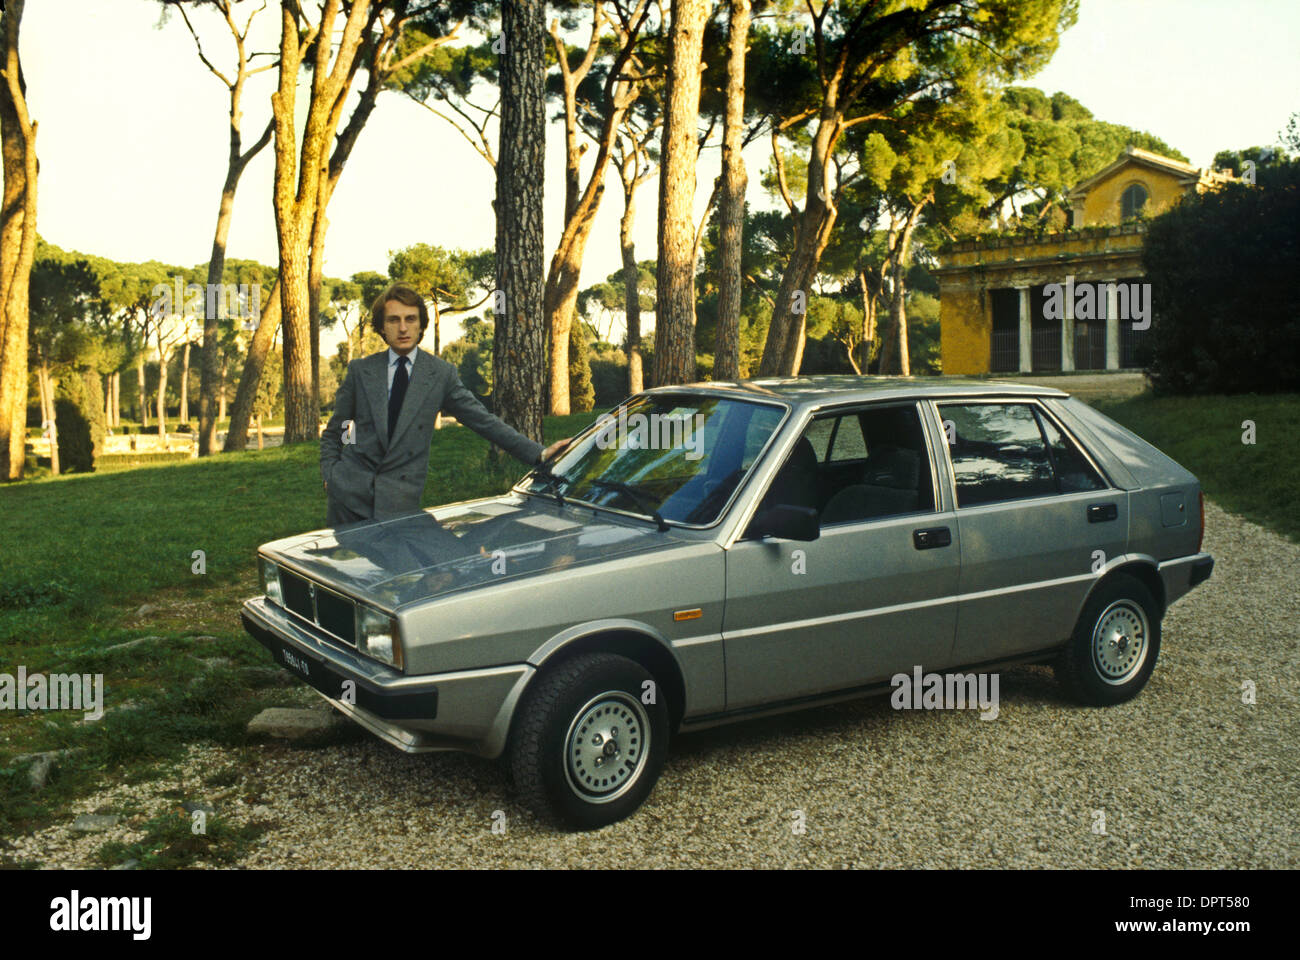 luca-di-montezemolo-with-the-lancia-delt